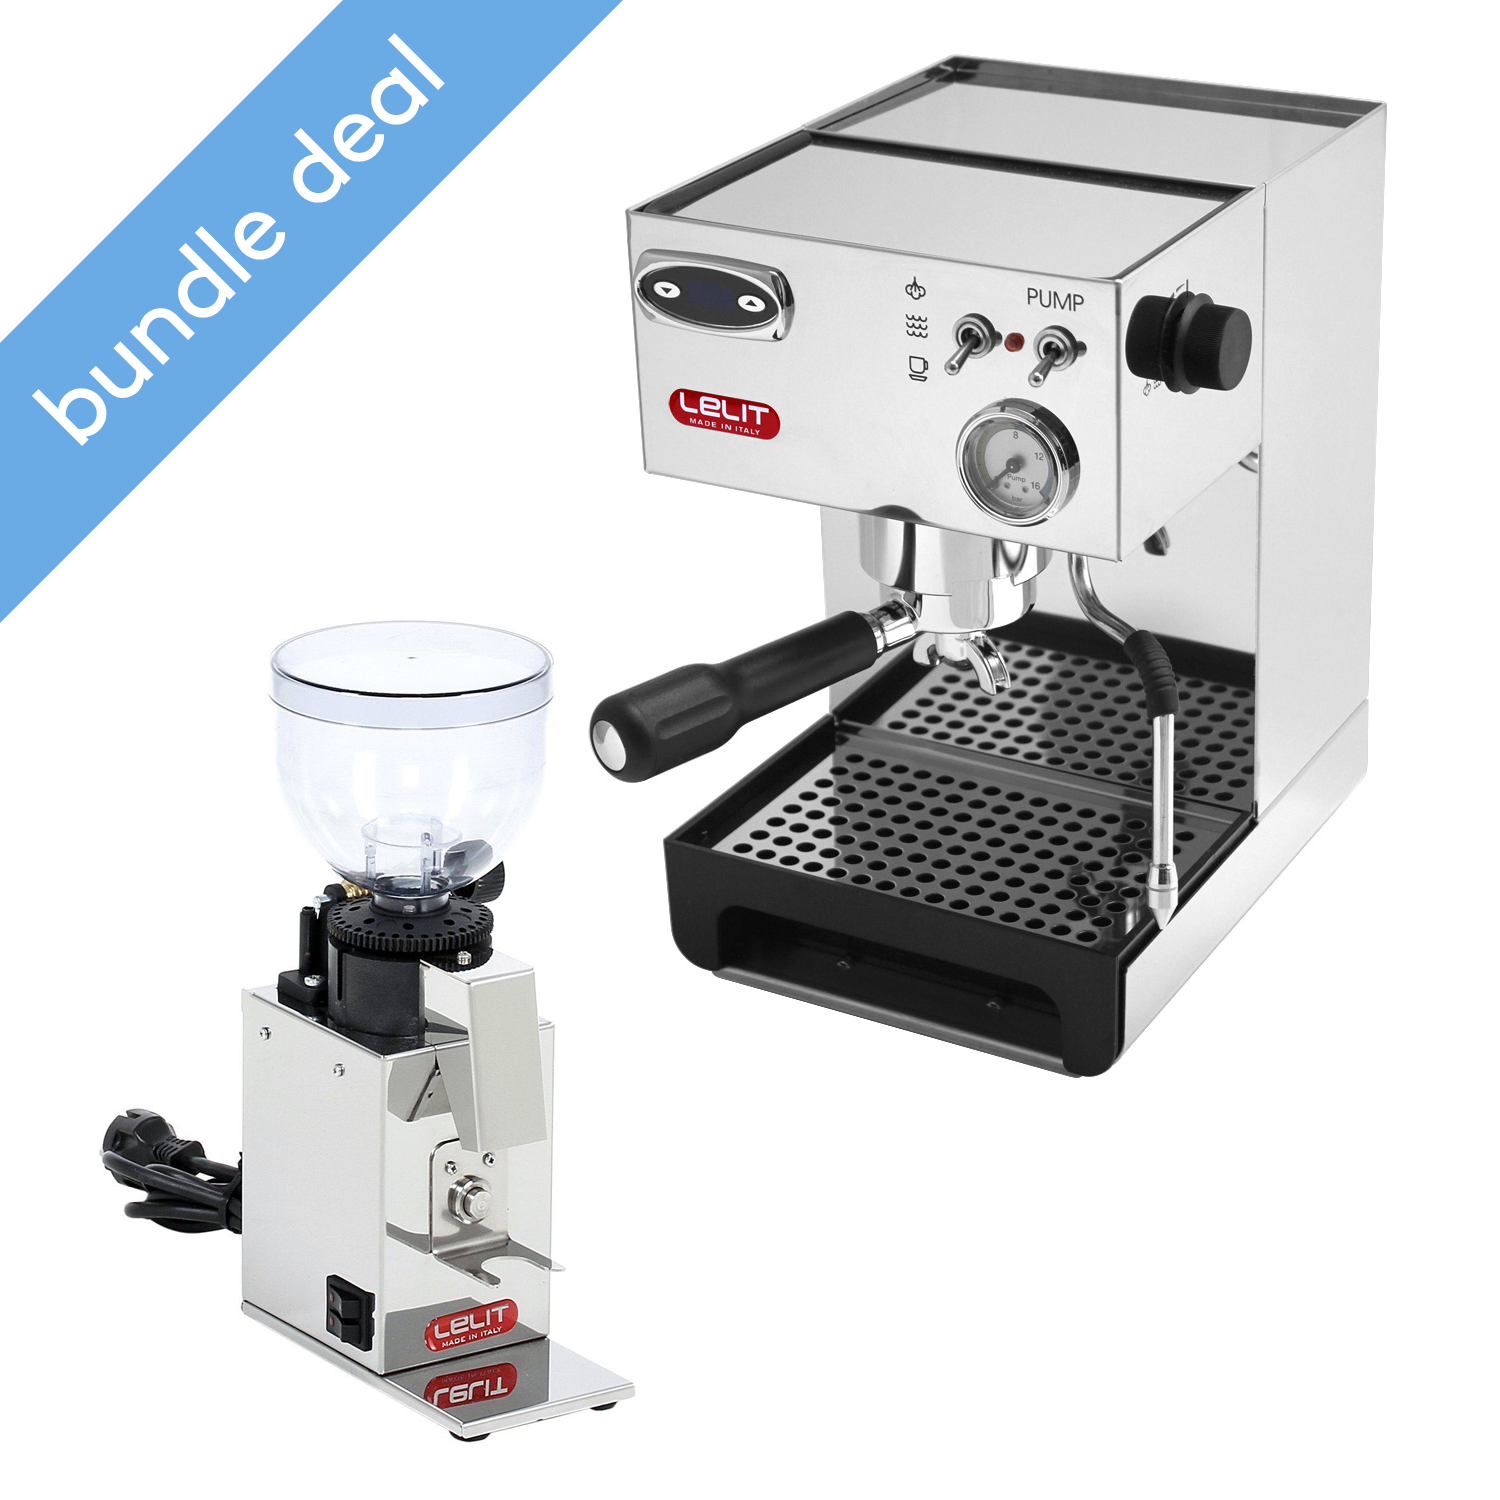 Lelit Anna 2 Espresso Machine with PID + Fred Grinder Bundle